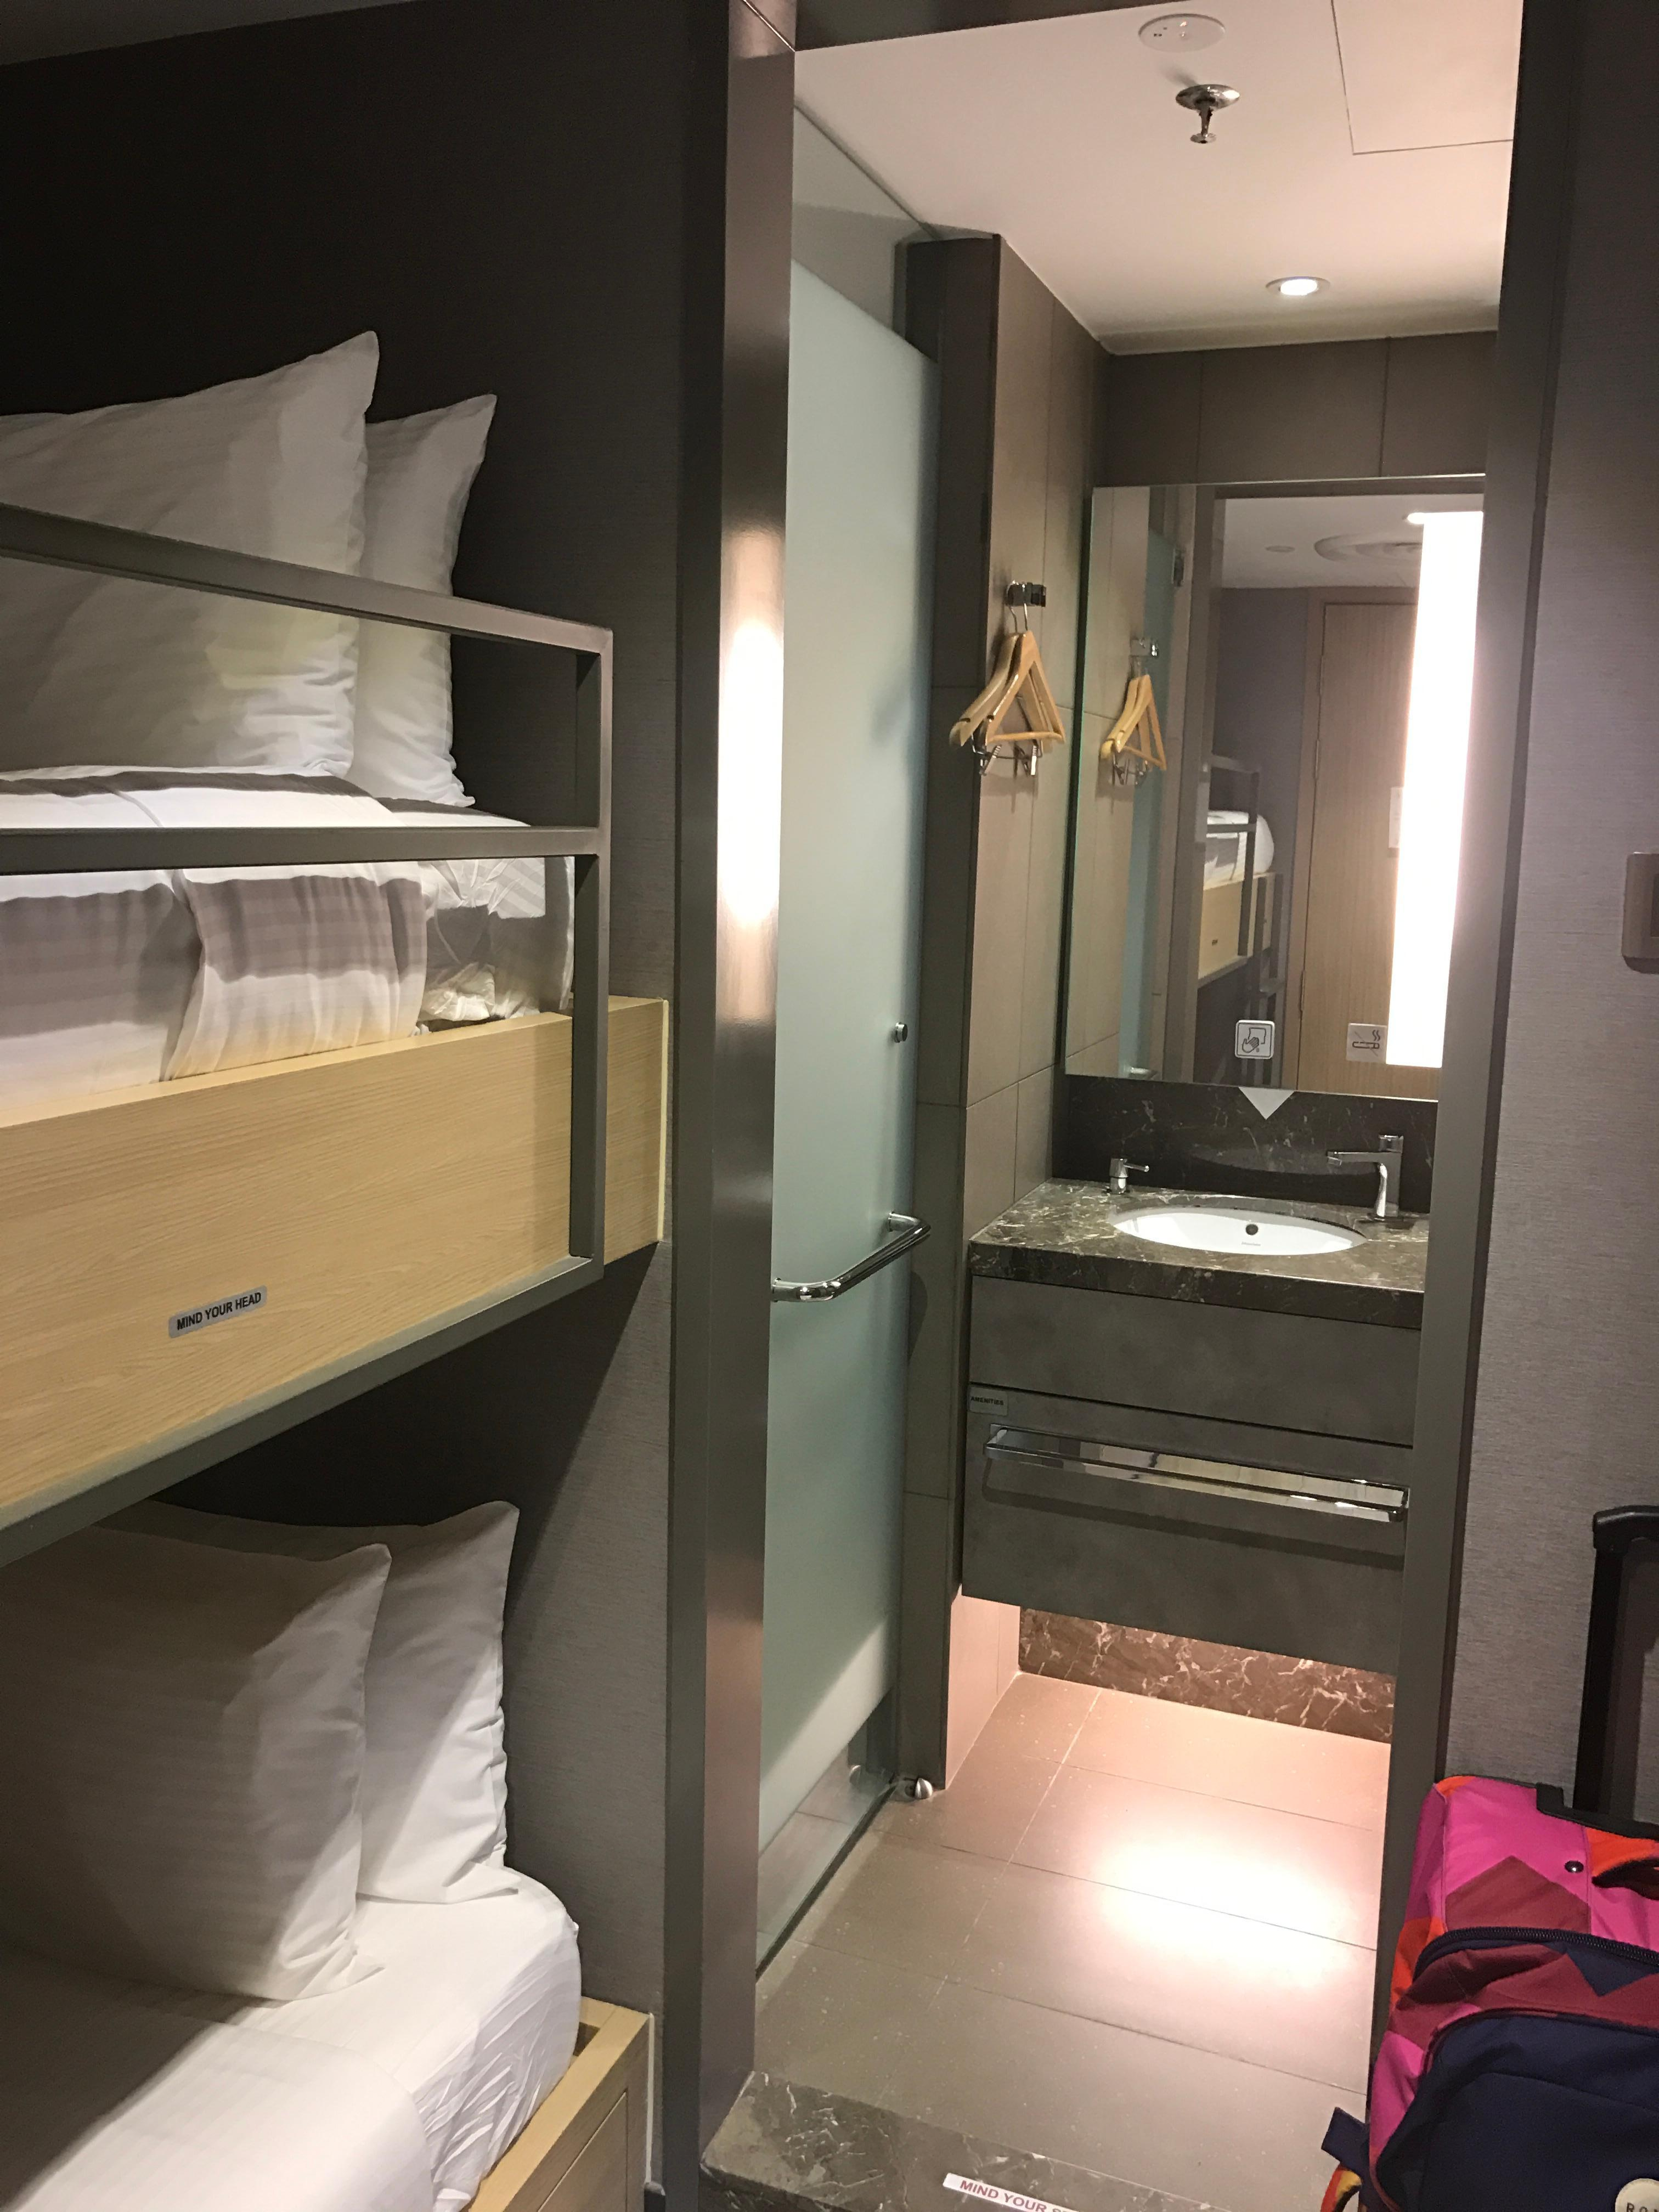 Bed, shower, toilet